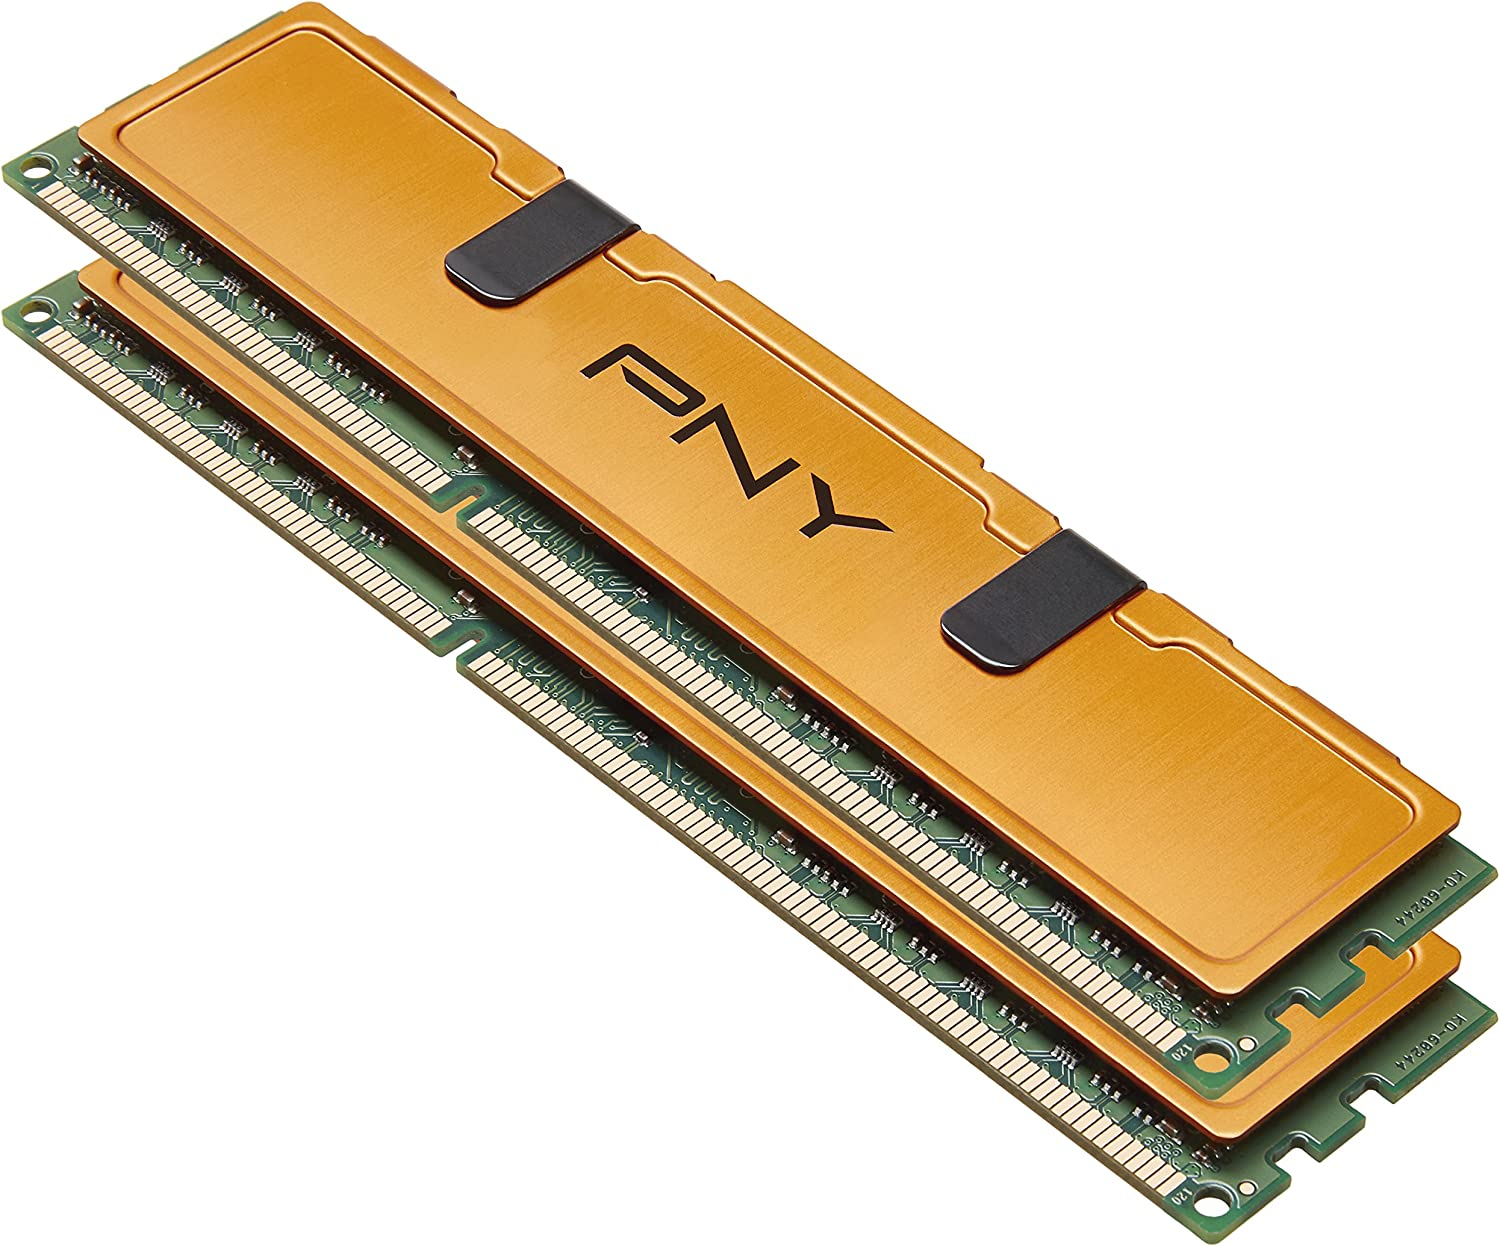 PNY DDR3 8GB (2x4GB) 1333MHz (PC3-10666) CAS 9 1.5V PC Memory Desktop Kit (MD8192KD3-1333)